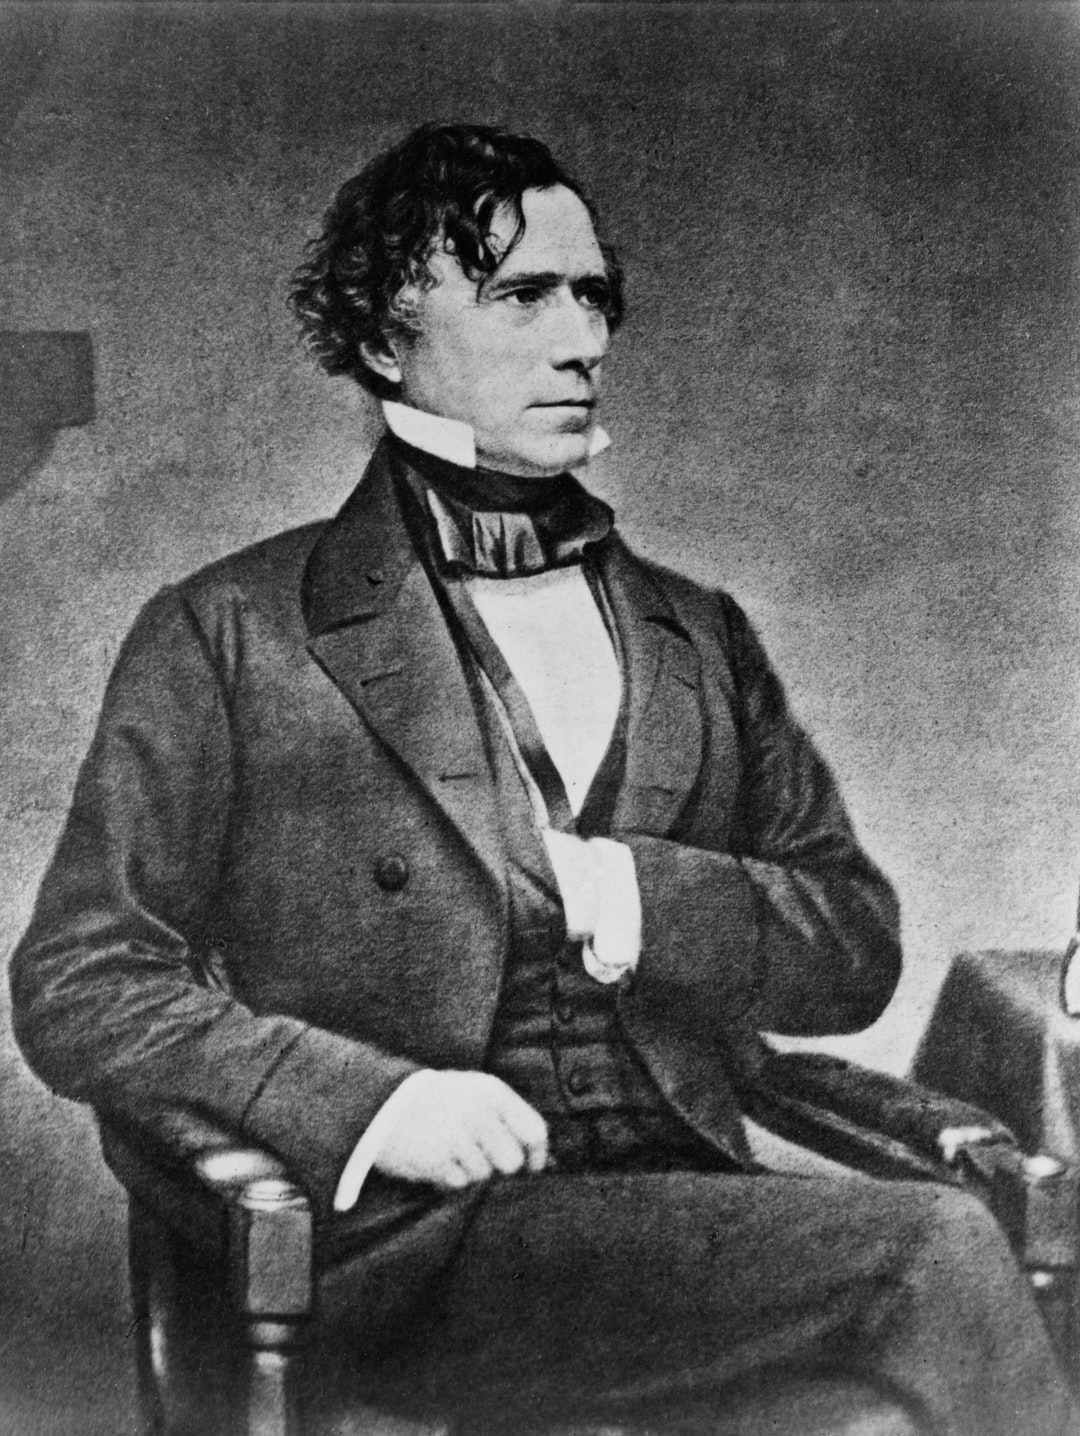 [President Franklin Pierce, three-quarter length portrait, seated, facing right, with left hand inside vest]. Photograph from the Brady-Handy Collection, [between 1855 and 1865, printed later]. Library of Congress Prints & Photographs Division. https://www.loc.gov/resource/cph.3a53287/